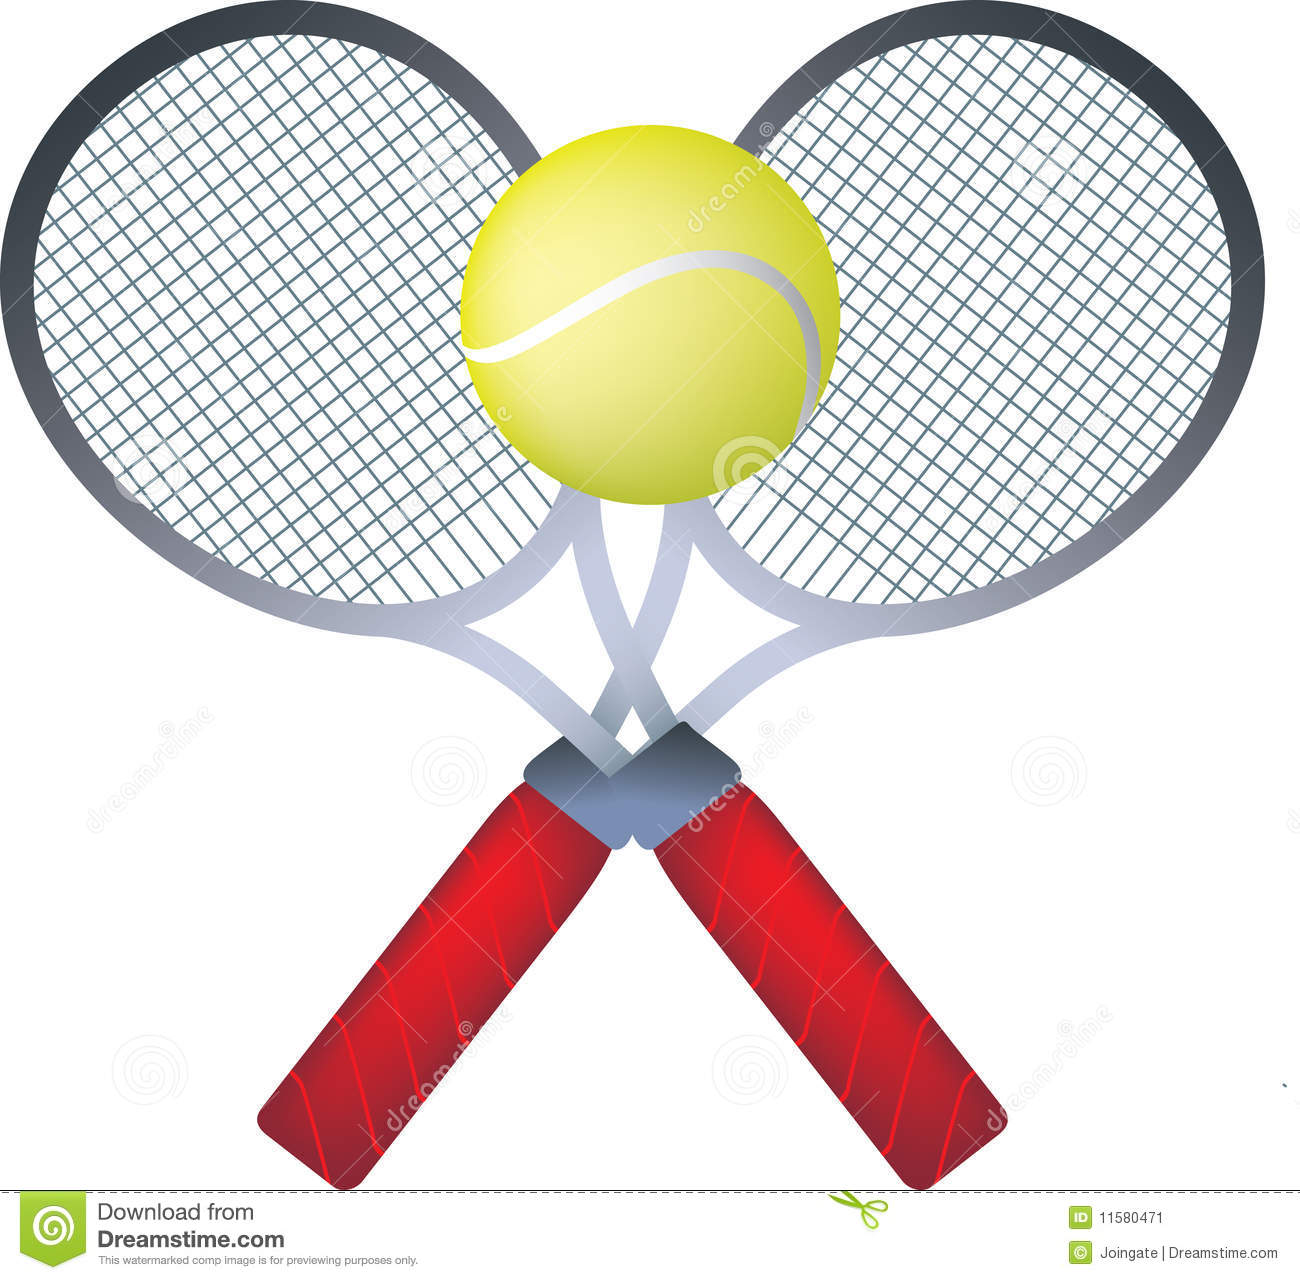 Tennis Rackets Stock Image - Image: 11580471